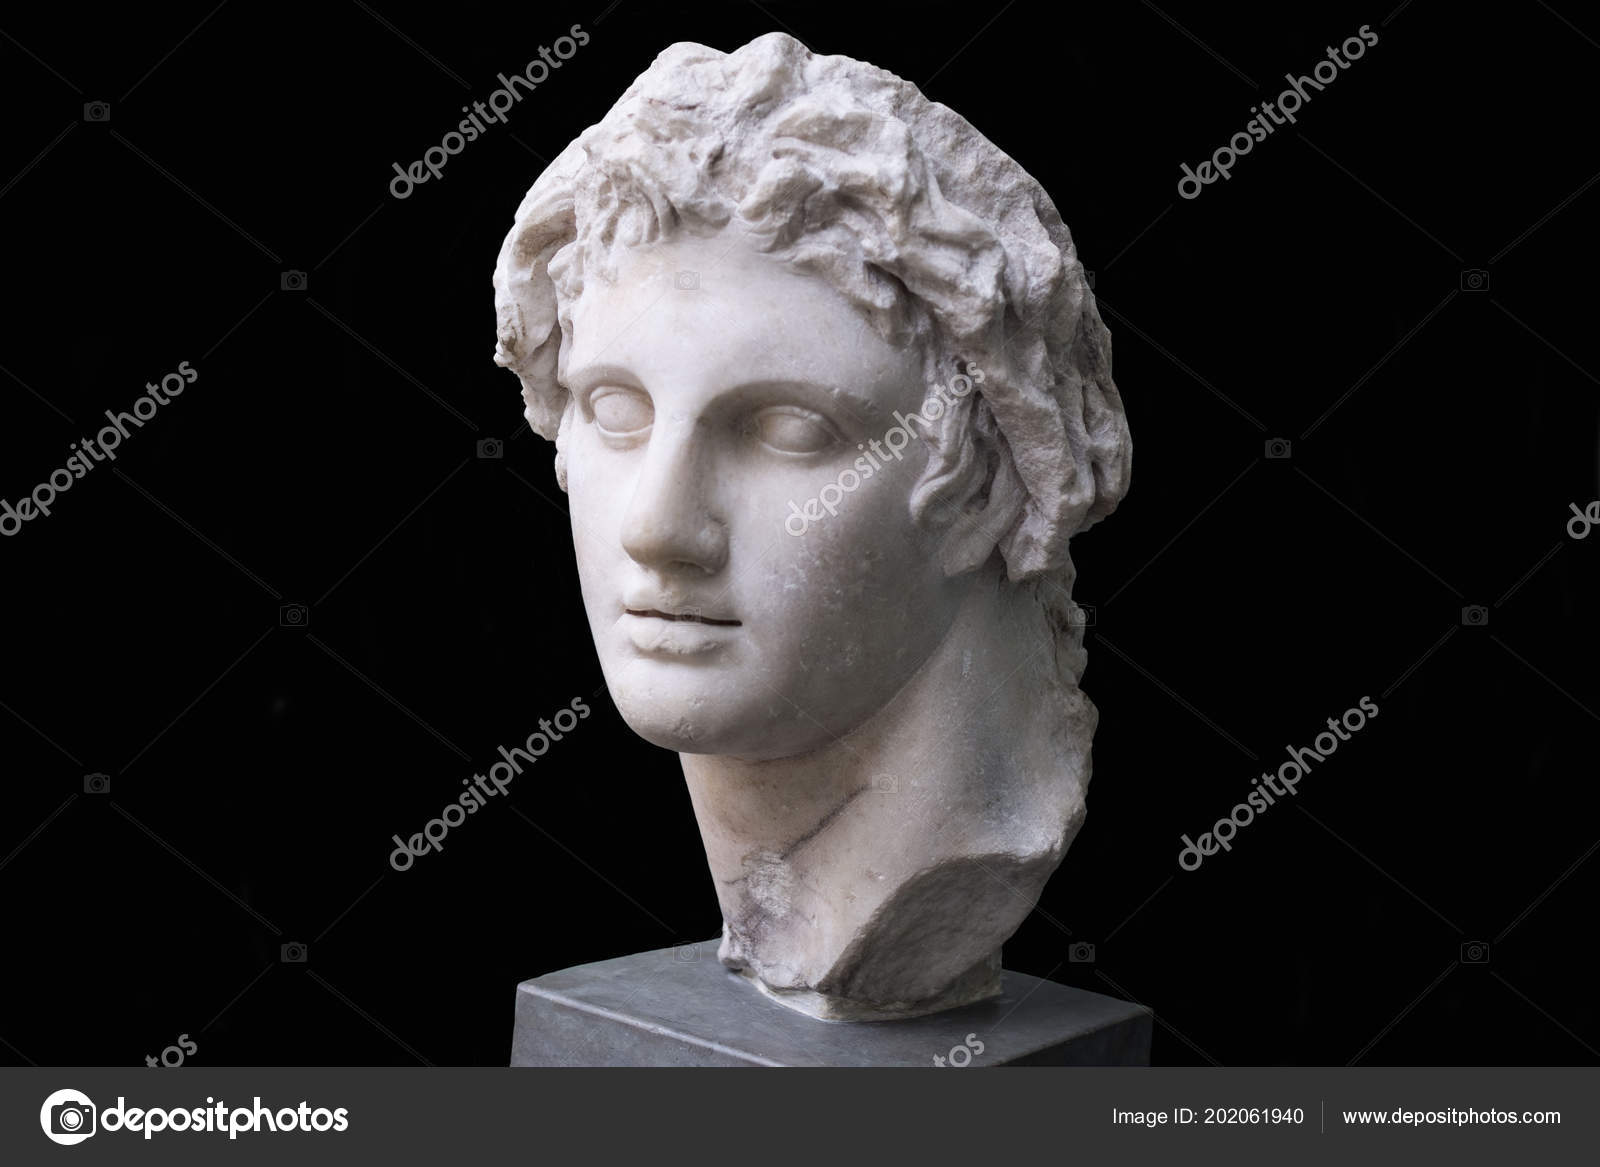 Ancient Marble Head Young Man Ancient Greek God Bust Black